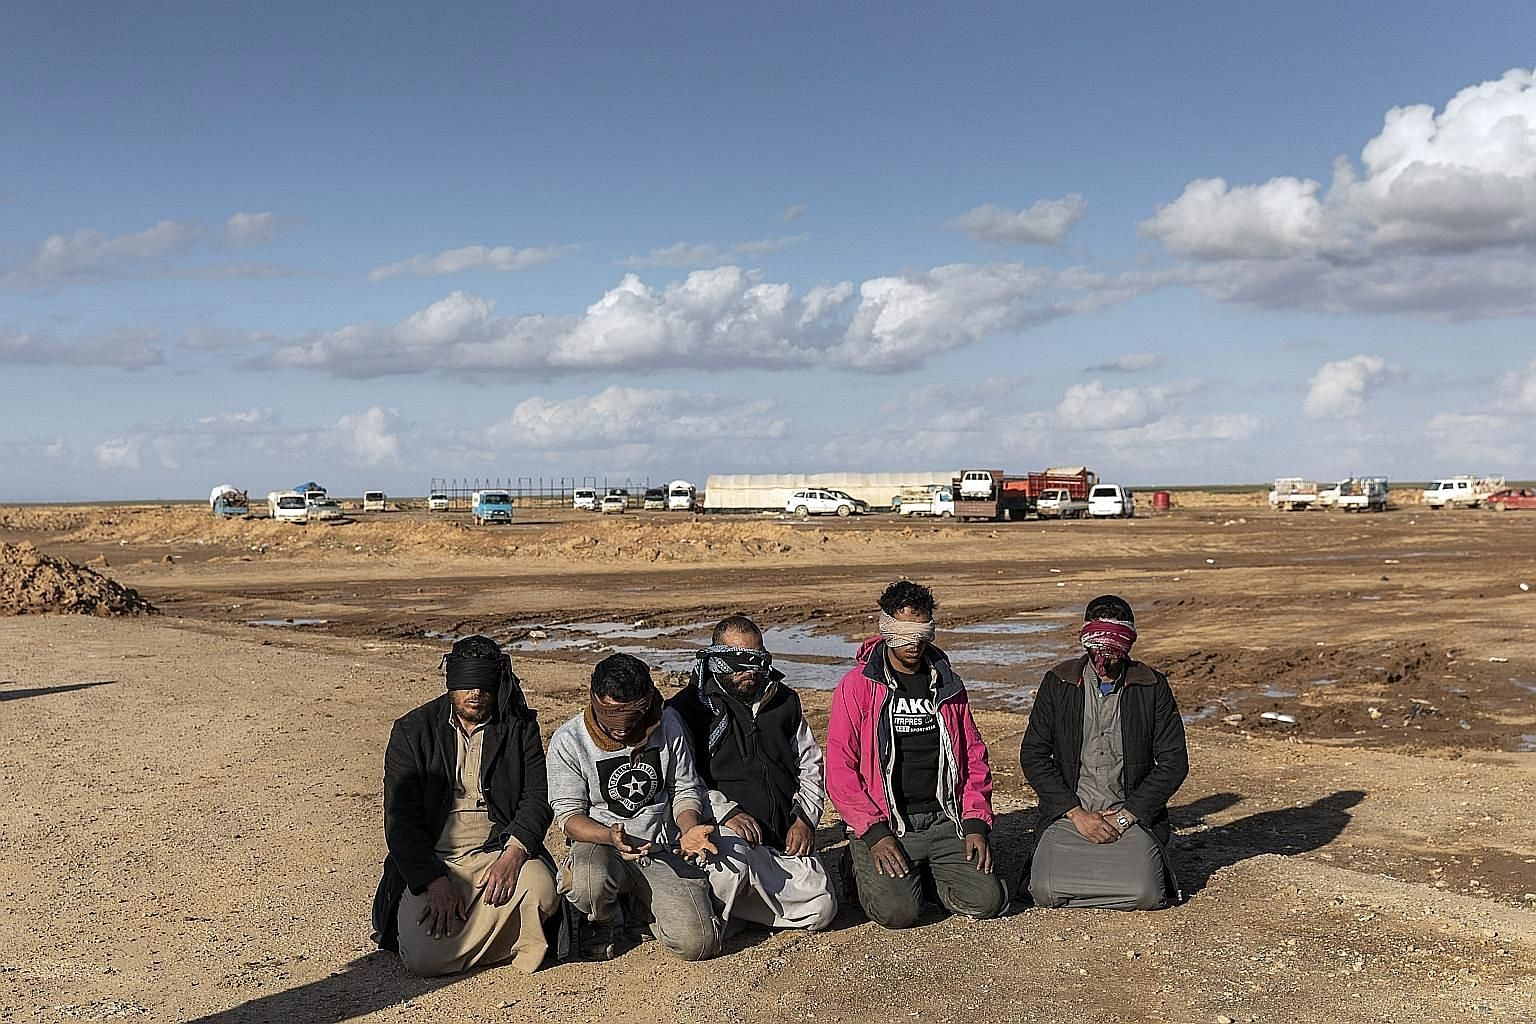 Suspected ISIS militants captured by the Syrian Democratic Forces (SDF) in Deir al-Zour province, Syria, last month. Once the US-led coalition declares it has taken all ISIS territories, the White House is expected to withdraw American troops. When t